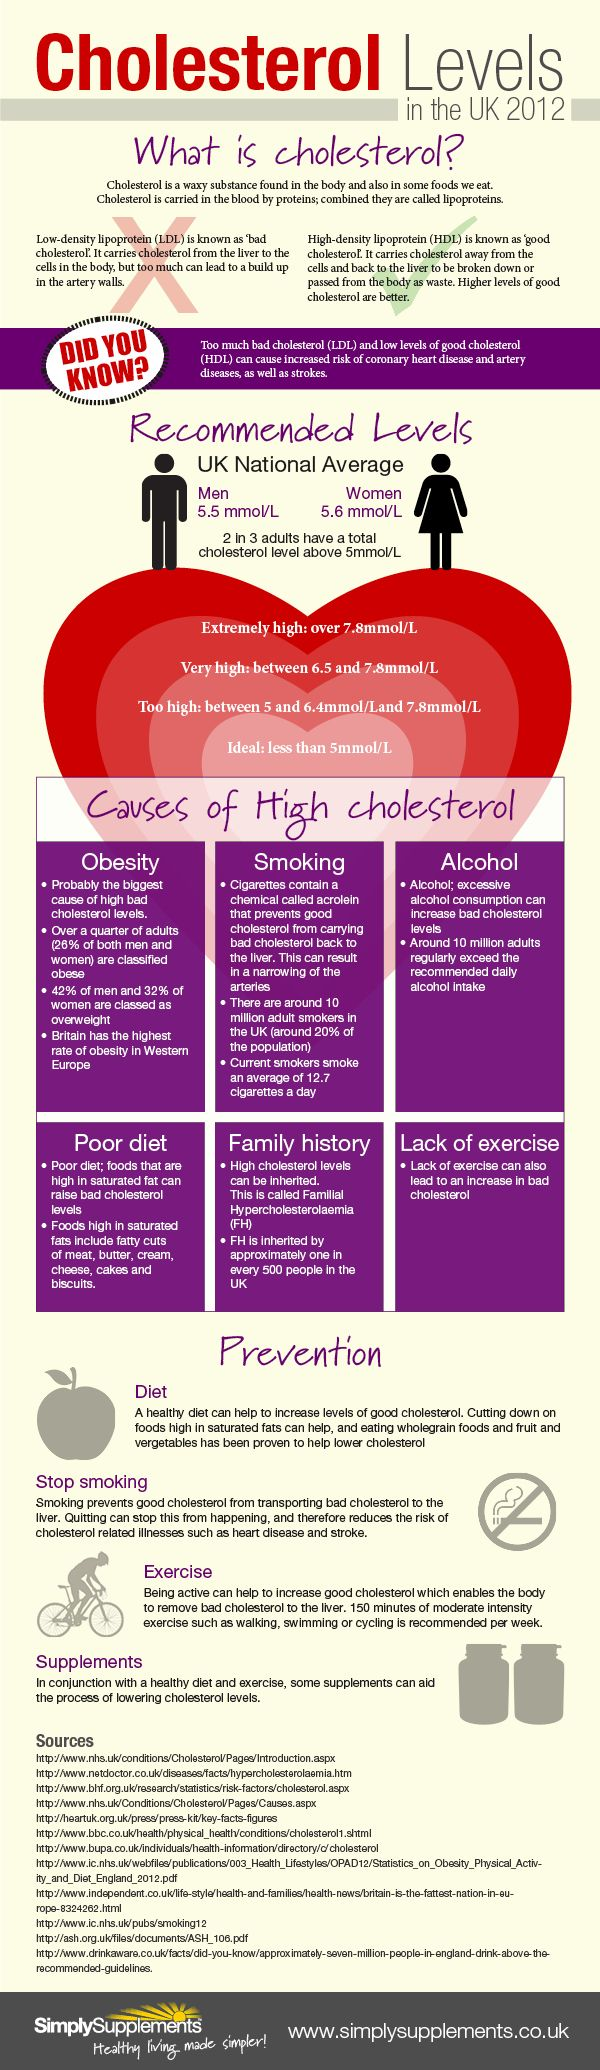 Cholesterol Infographic...Cholesterol levels can be reduced by lowering the amount of saturated fat in the diet to reduce LDL cholesterol and also making use of more monounsaturated fats and soluble fiber in order to increase HDL cholesterol. Read the full article here:  6 Step Low Cholesterol Diet Plan